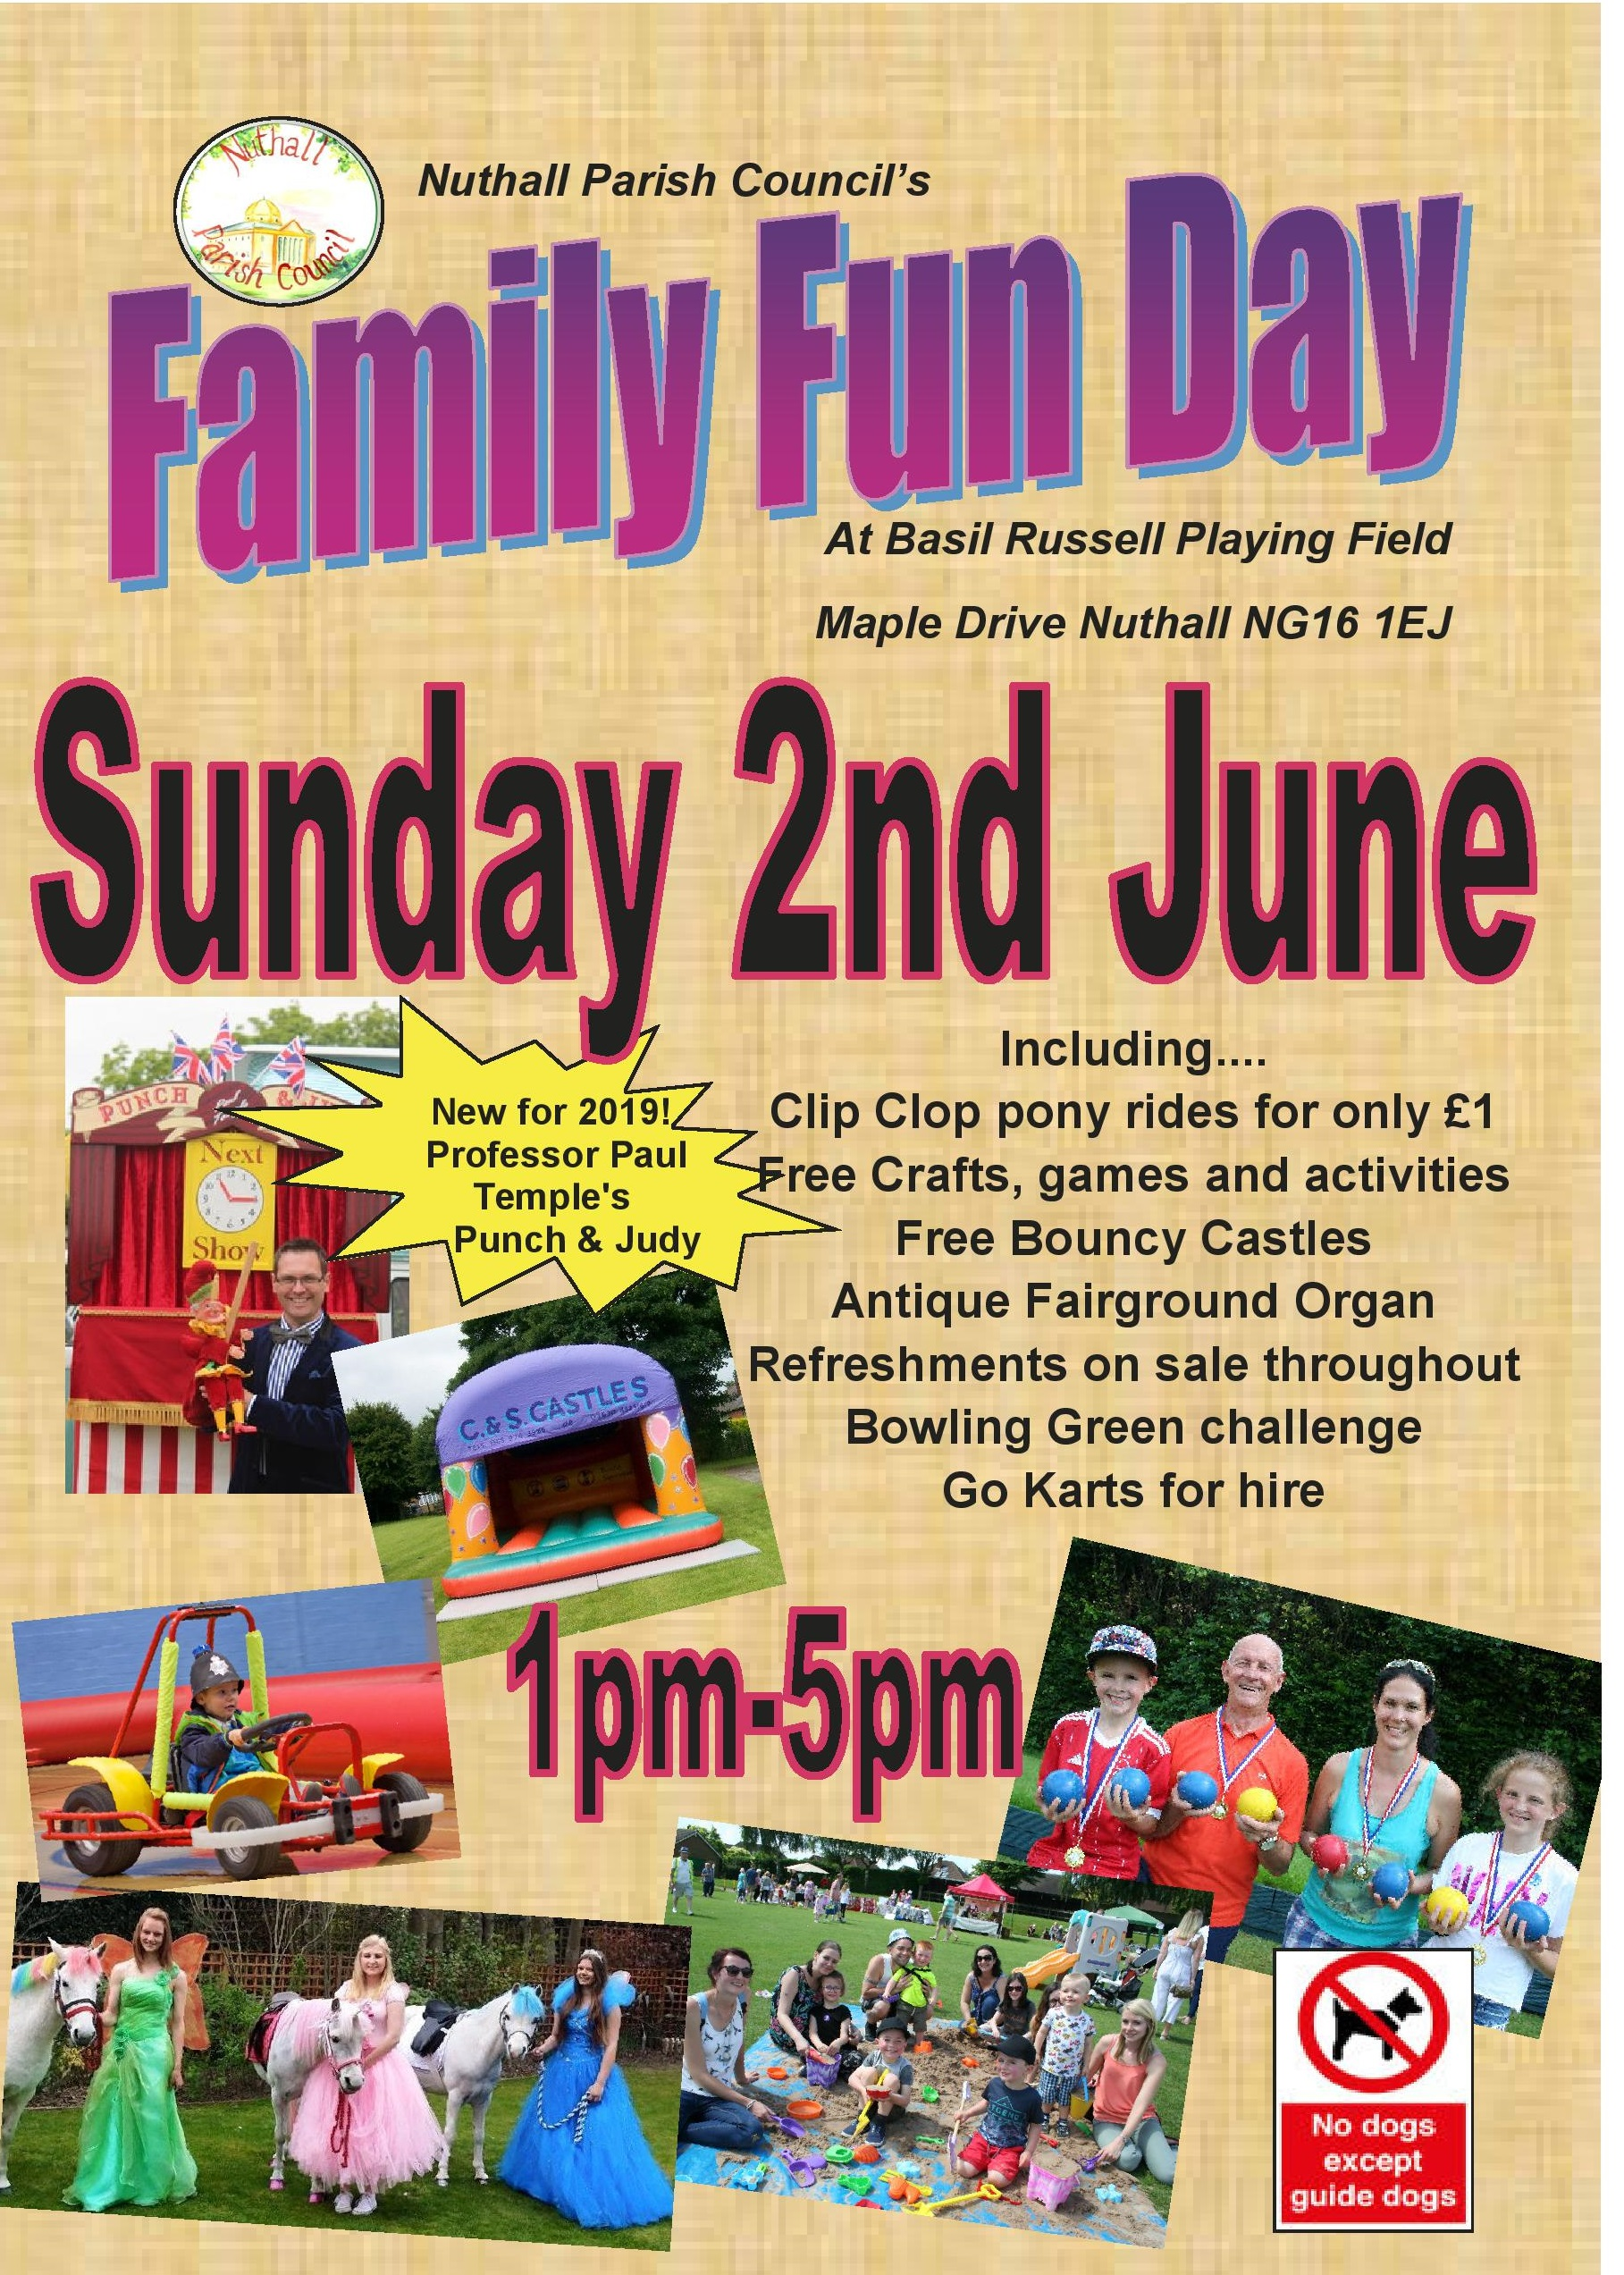 Family Fun Day event.